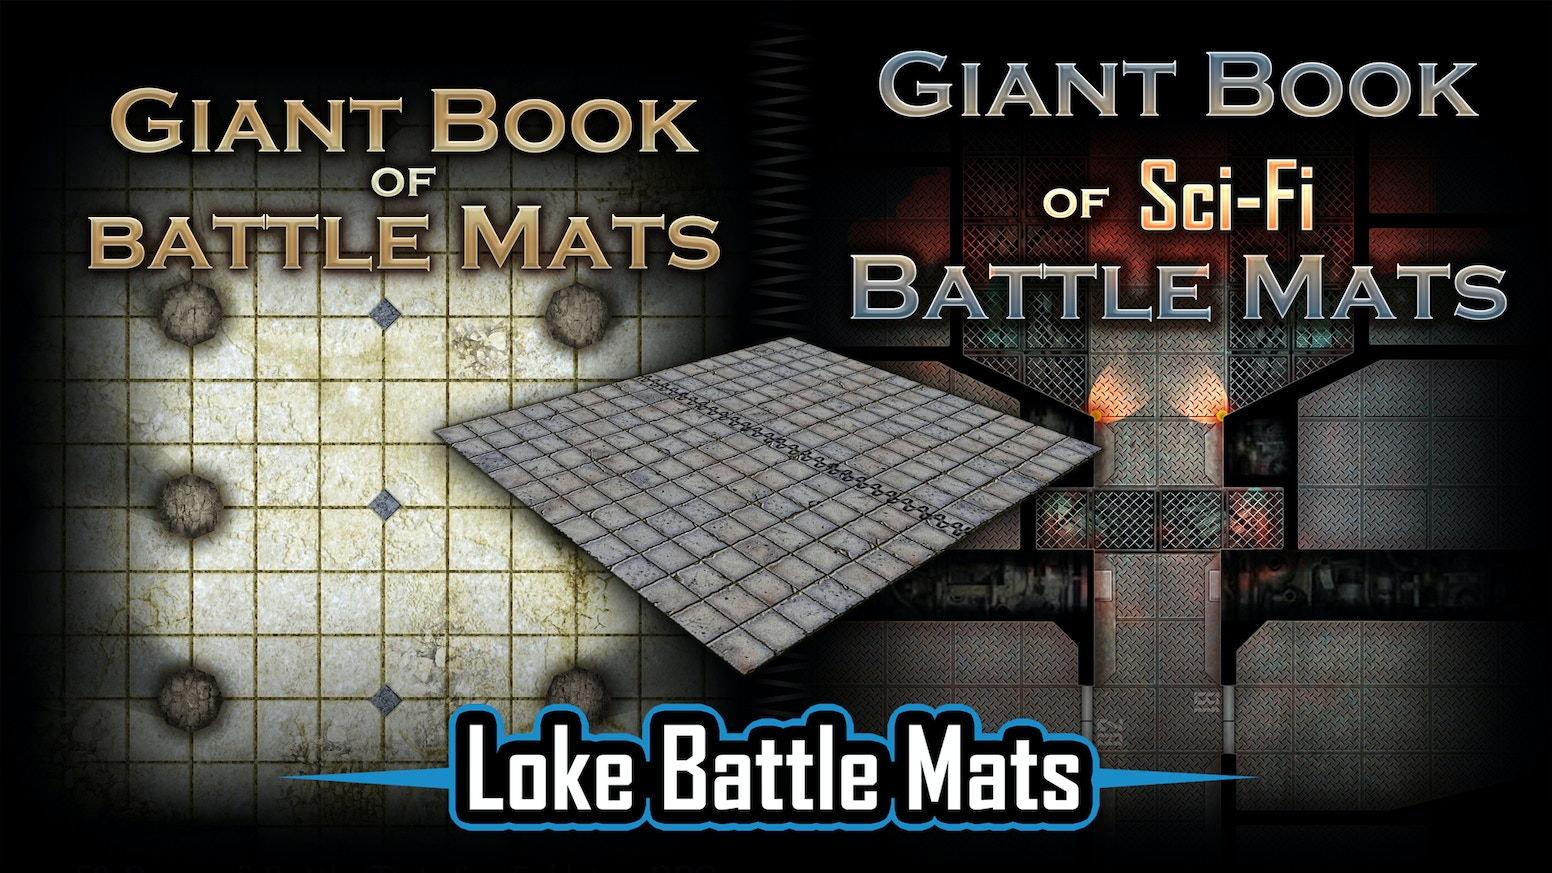 Battle Mat Books for Fantasy and Sci-Fi Tabletop RPG Games